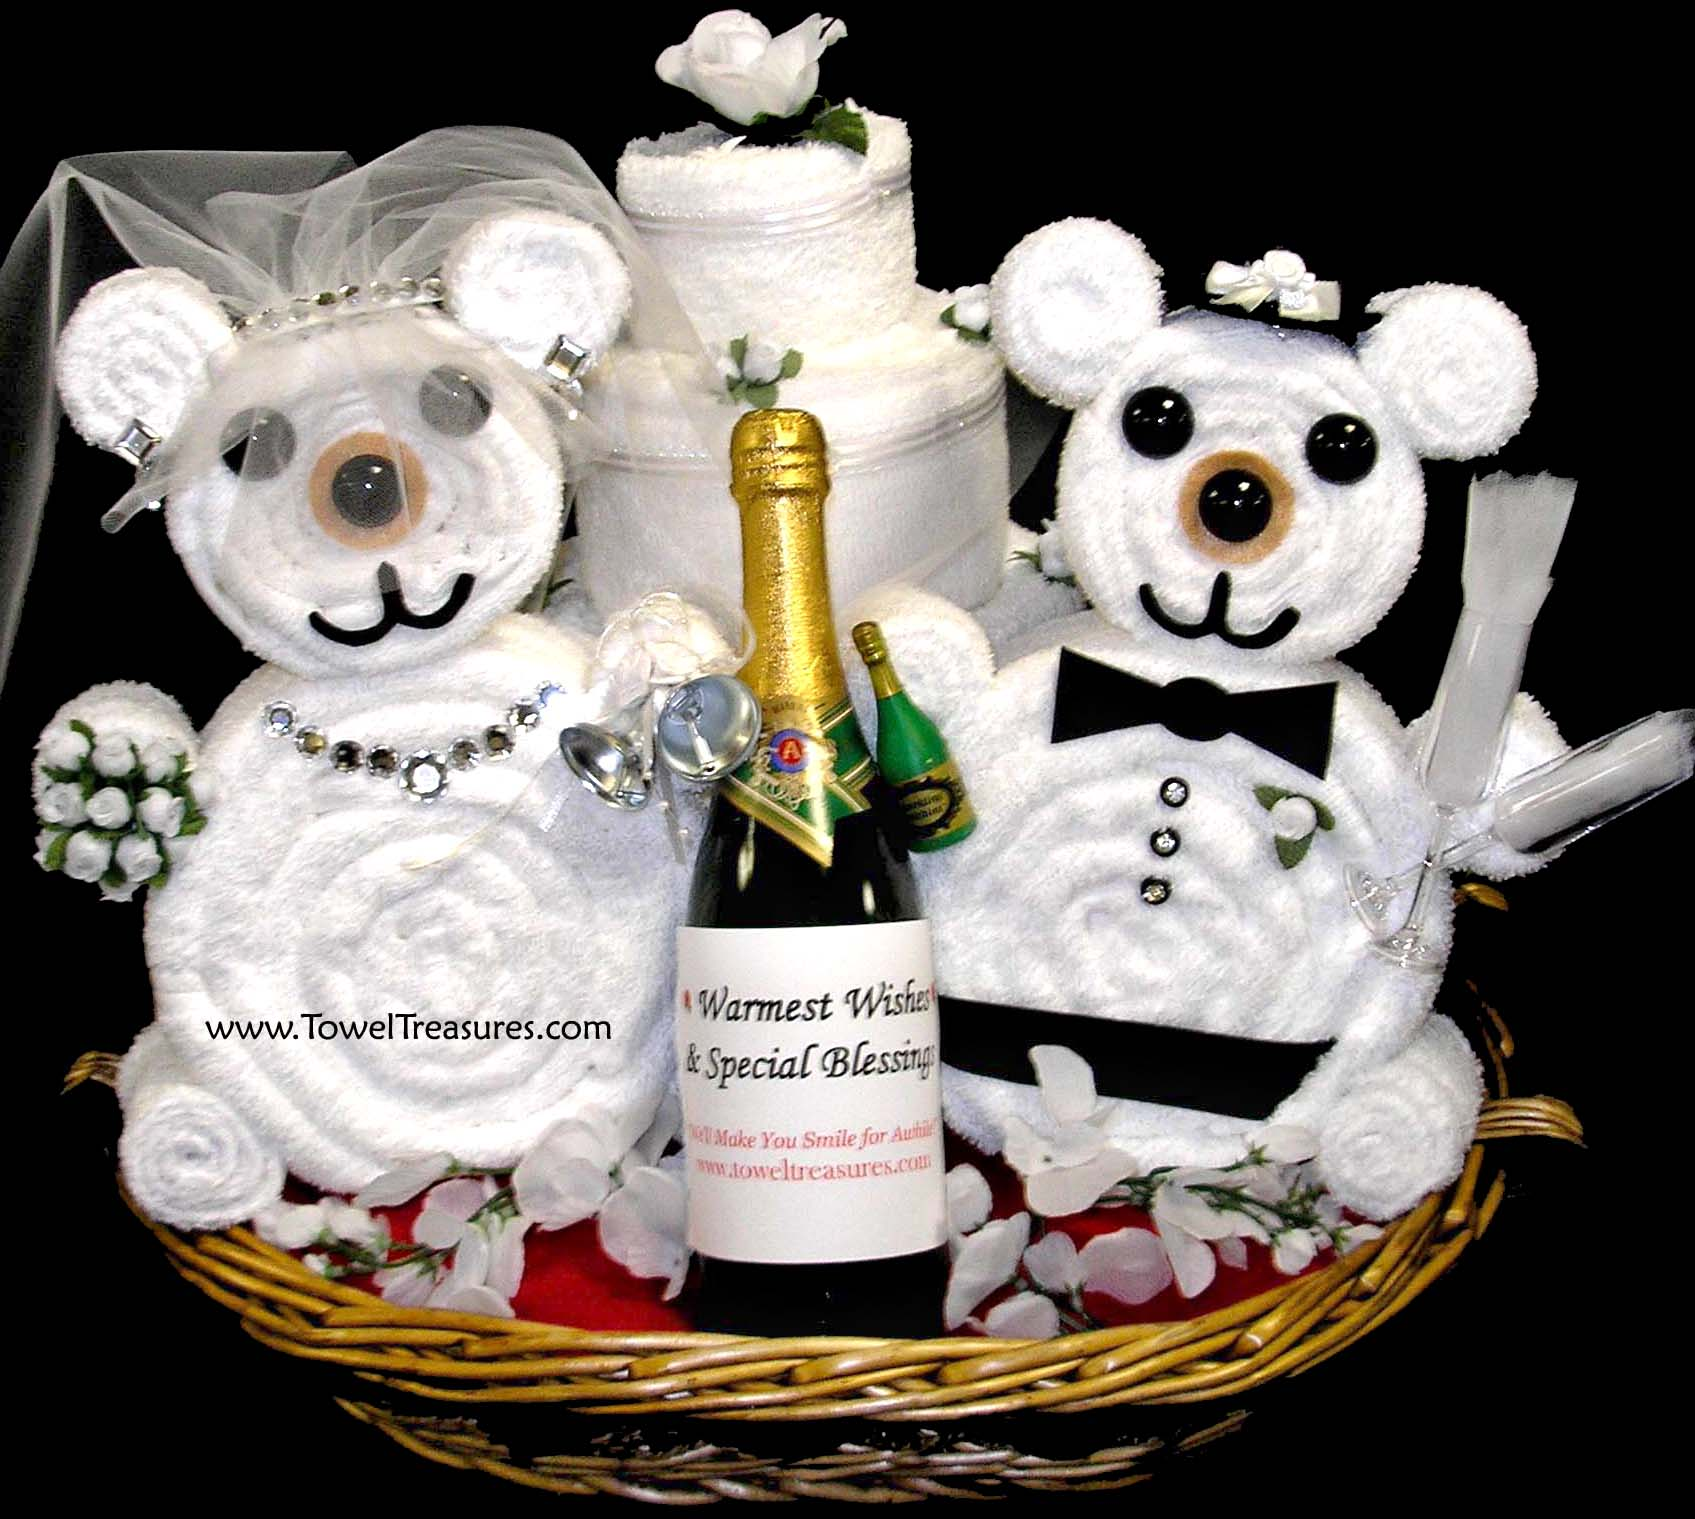 Bridal Shower Gift Basket Ideas For Bride : ... Photos - Great Wedding Shower Gift Basket Ideas Wedding Party Gallery